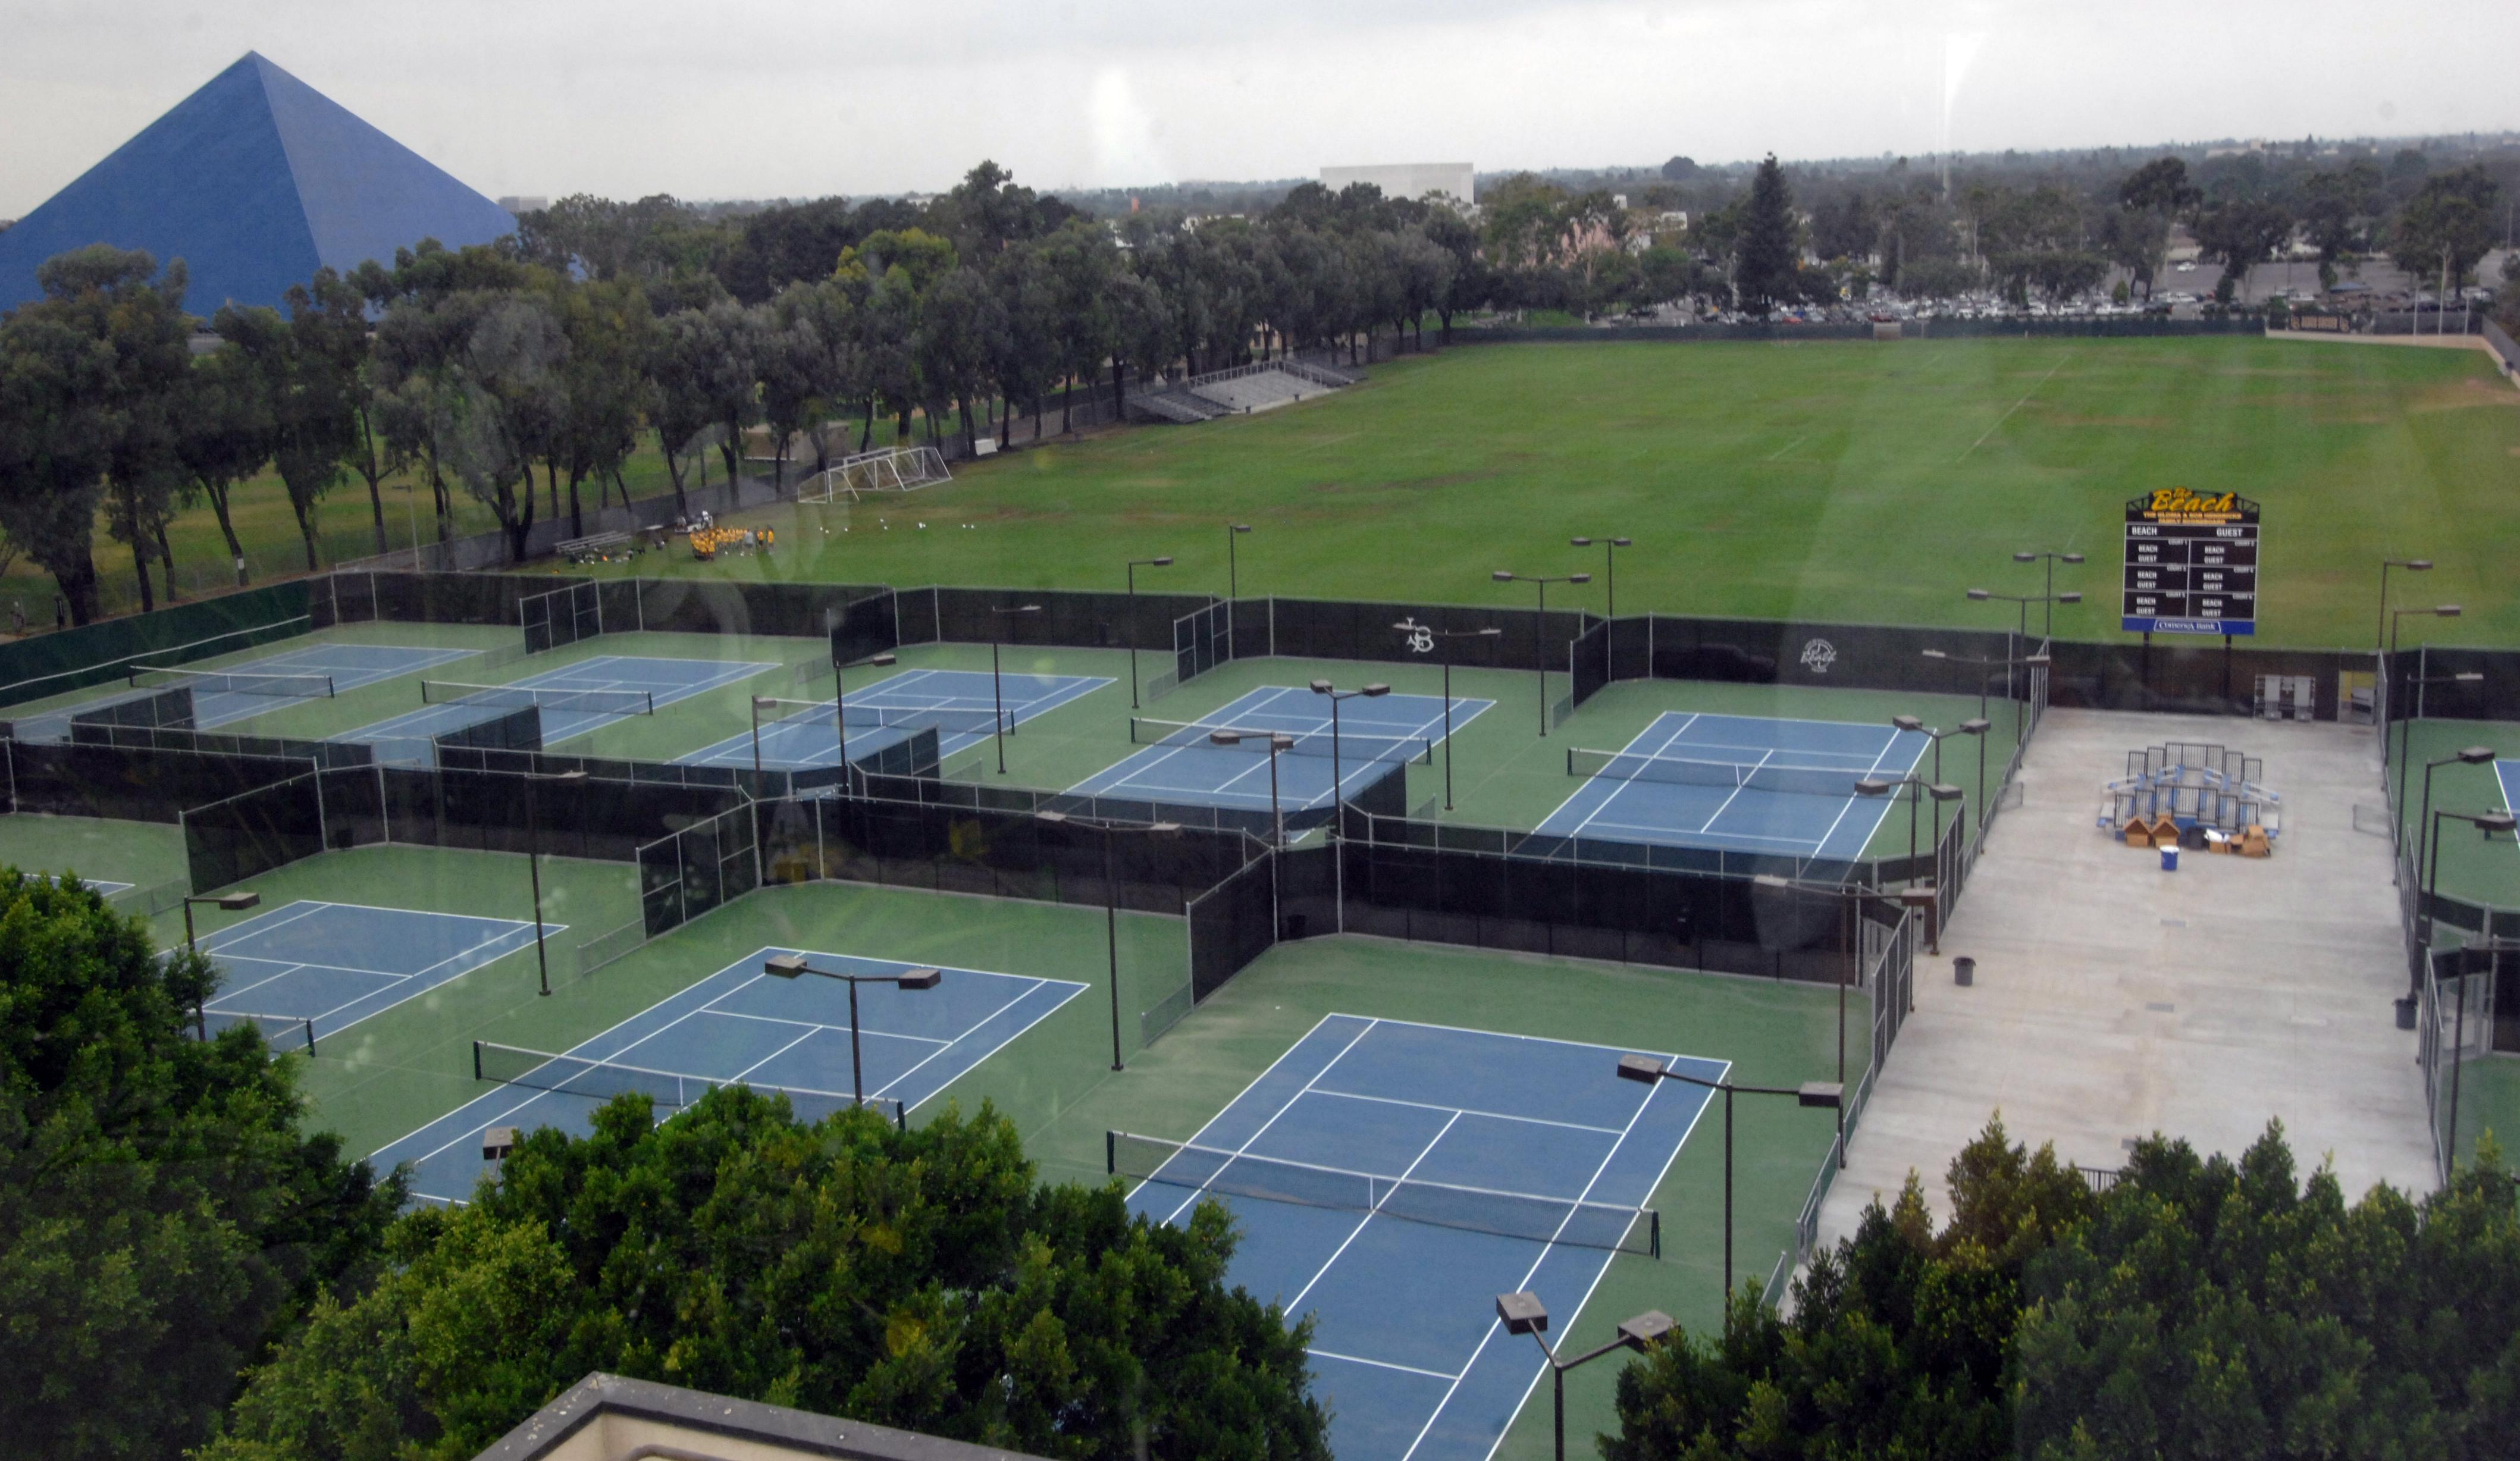 College Tennis Teams  Long Beach State University  Team. Four Signs Of Stroke. Tranquility Signs Of Stroke. Thought Signs Of Stroke. Colored Signs Of Stroke. Cancer Ribbon Signs. Heat Illness Signs Of Stroke. Subtraction Signs Of Stroke. Rio Grande Signs